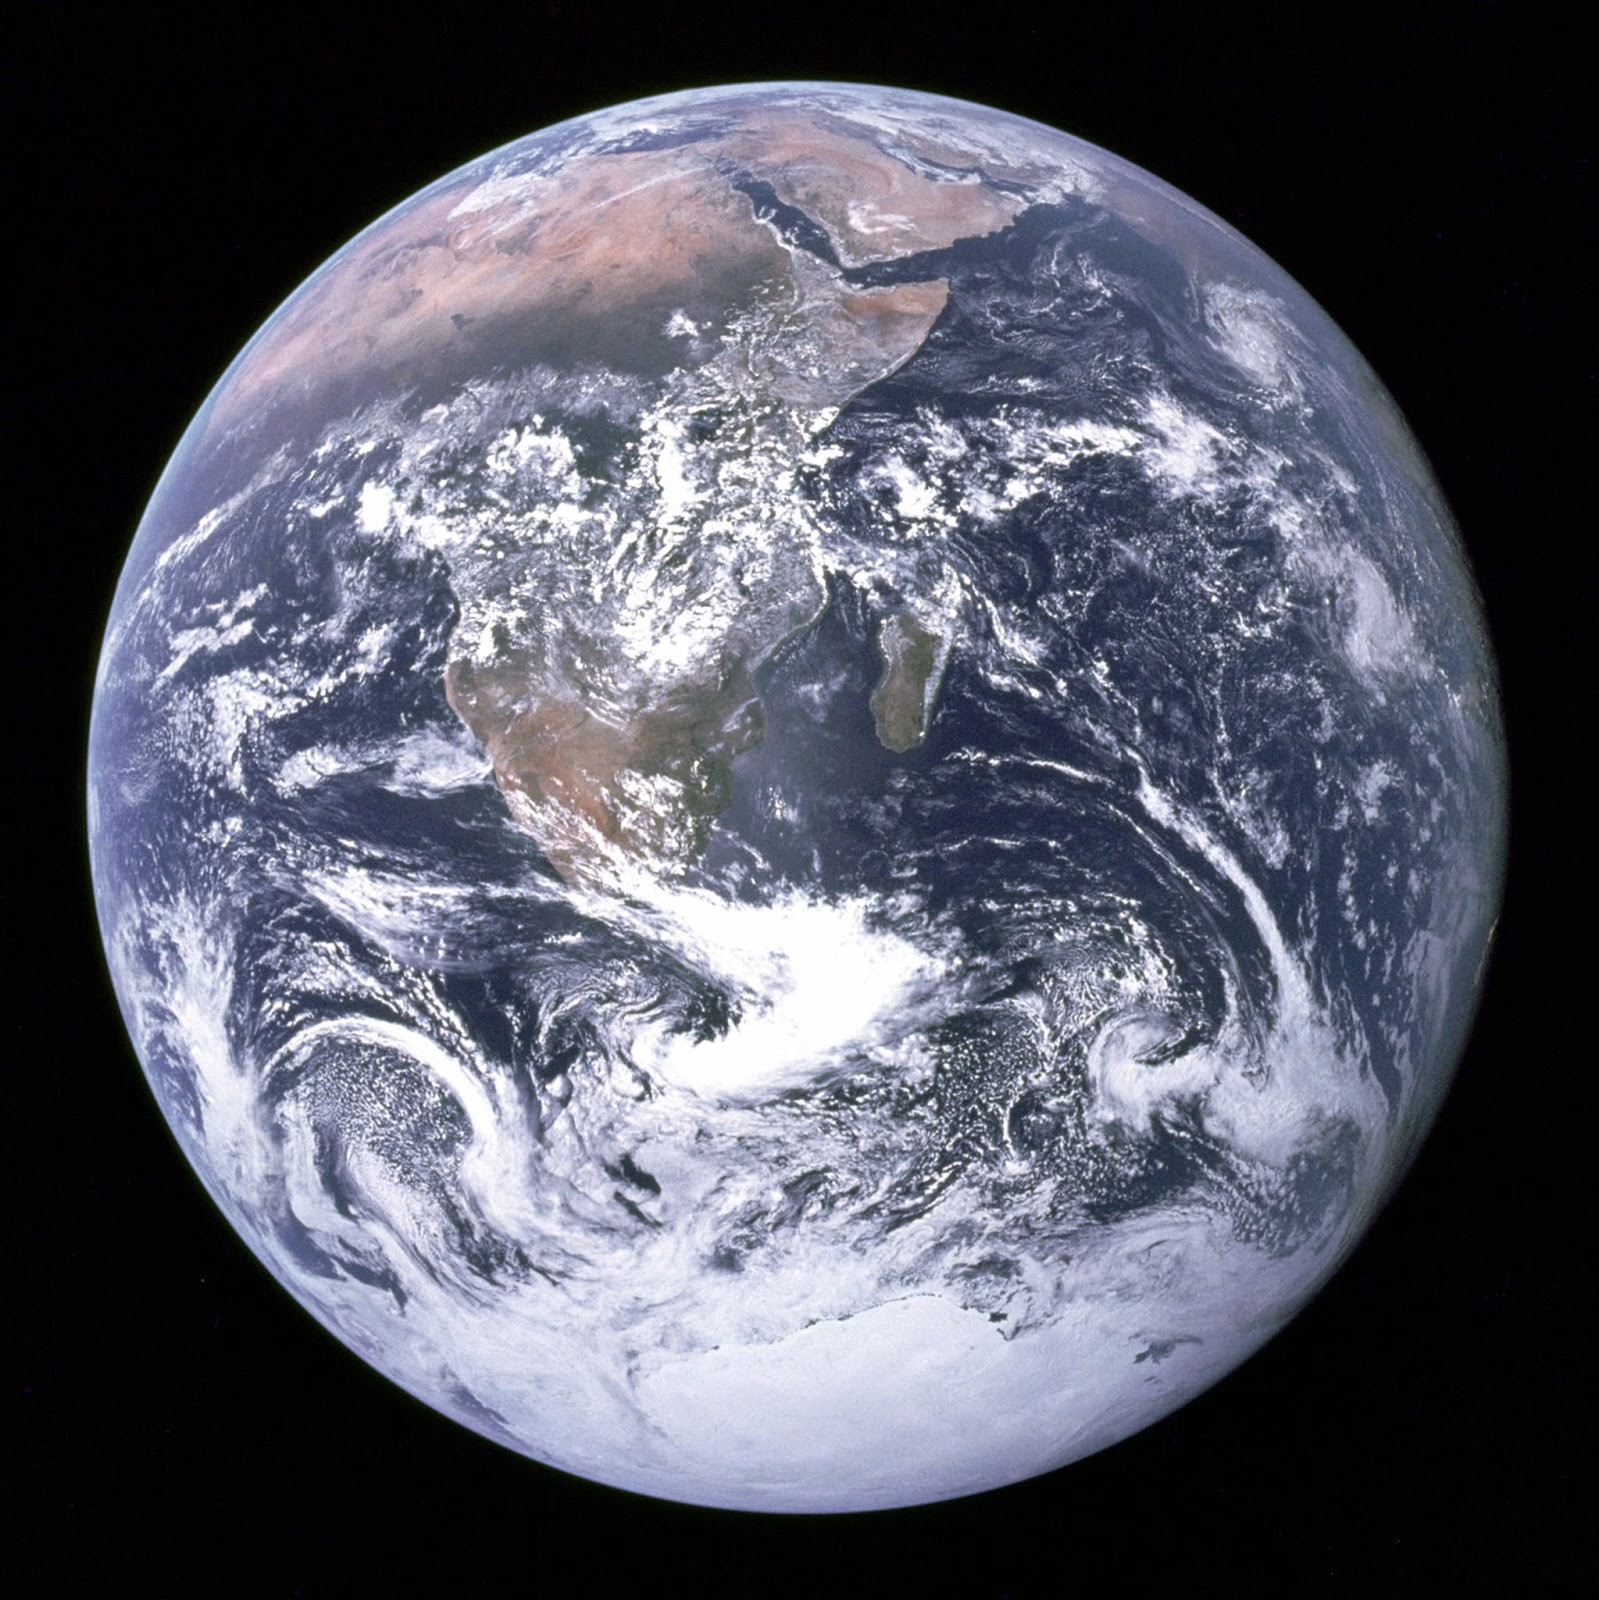 Real photo of Earth taken by Apollo 17